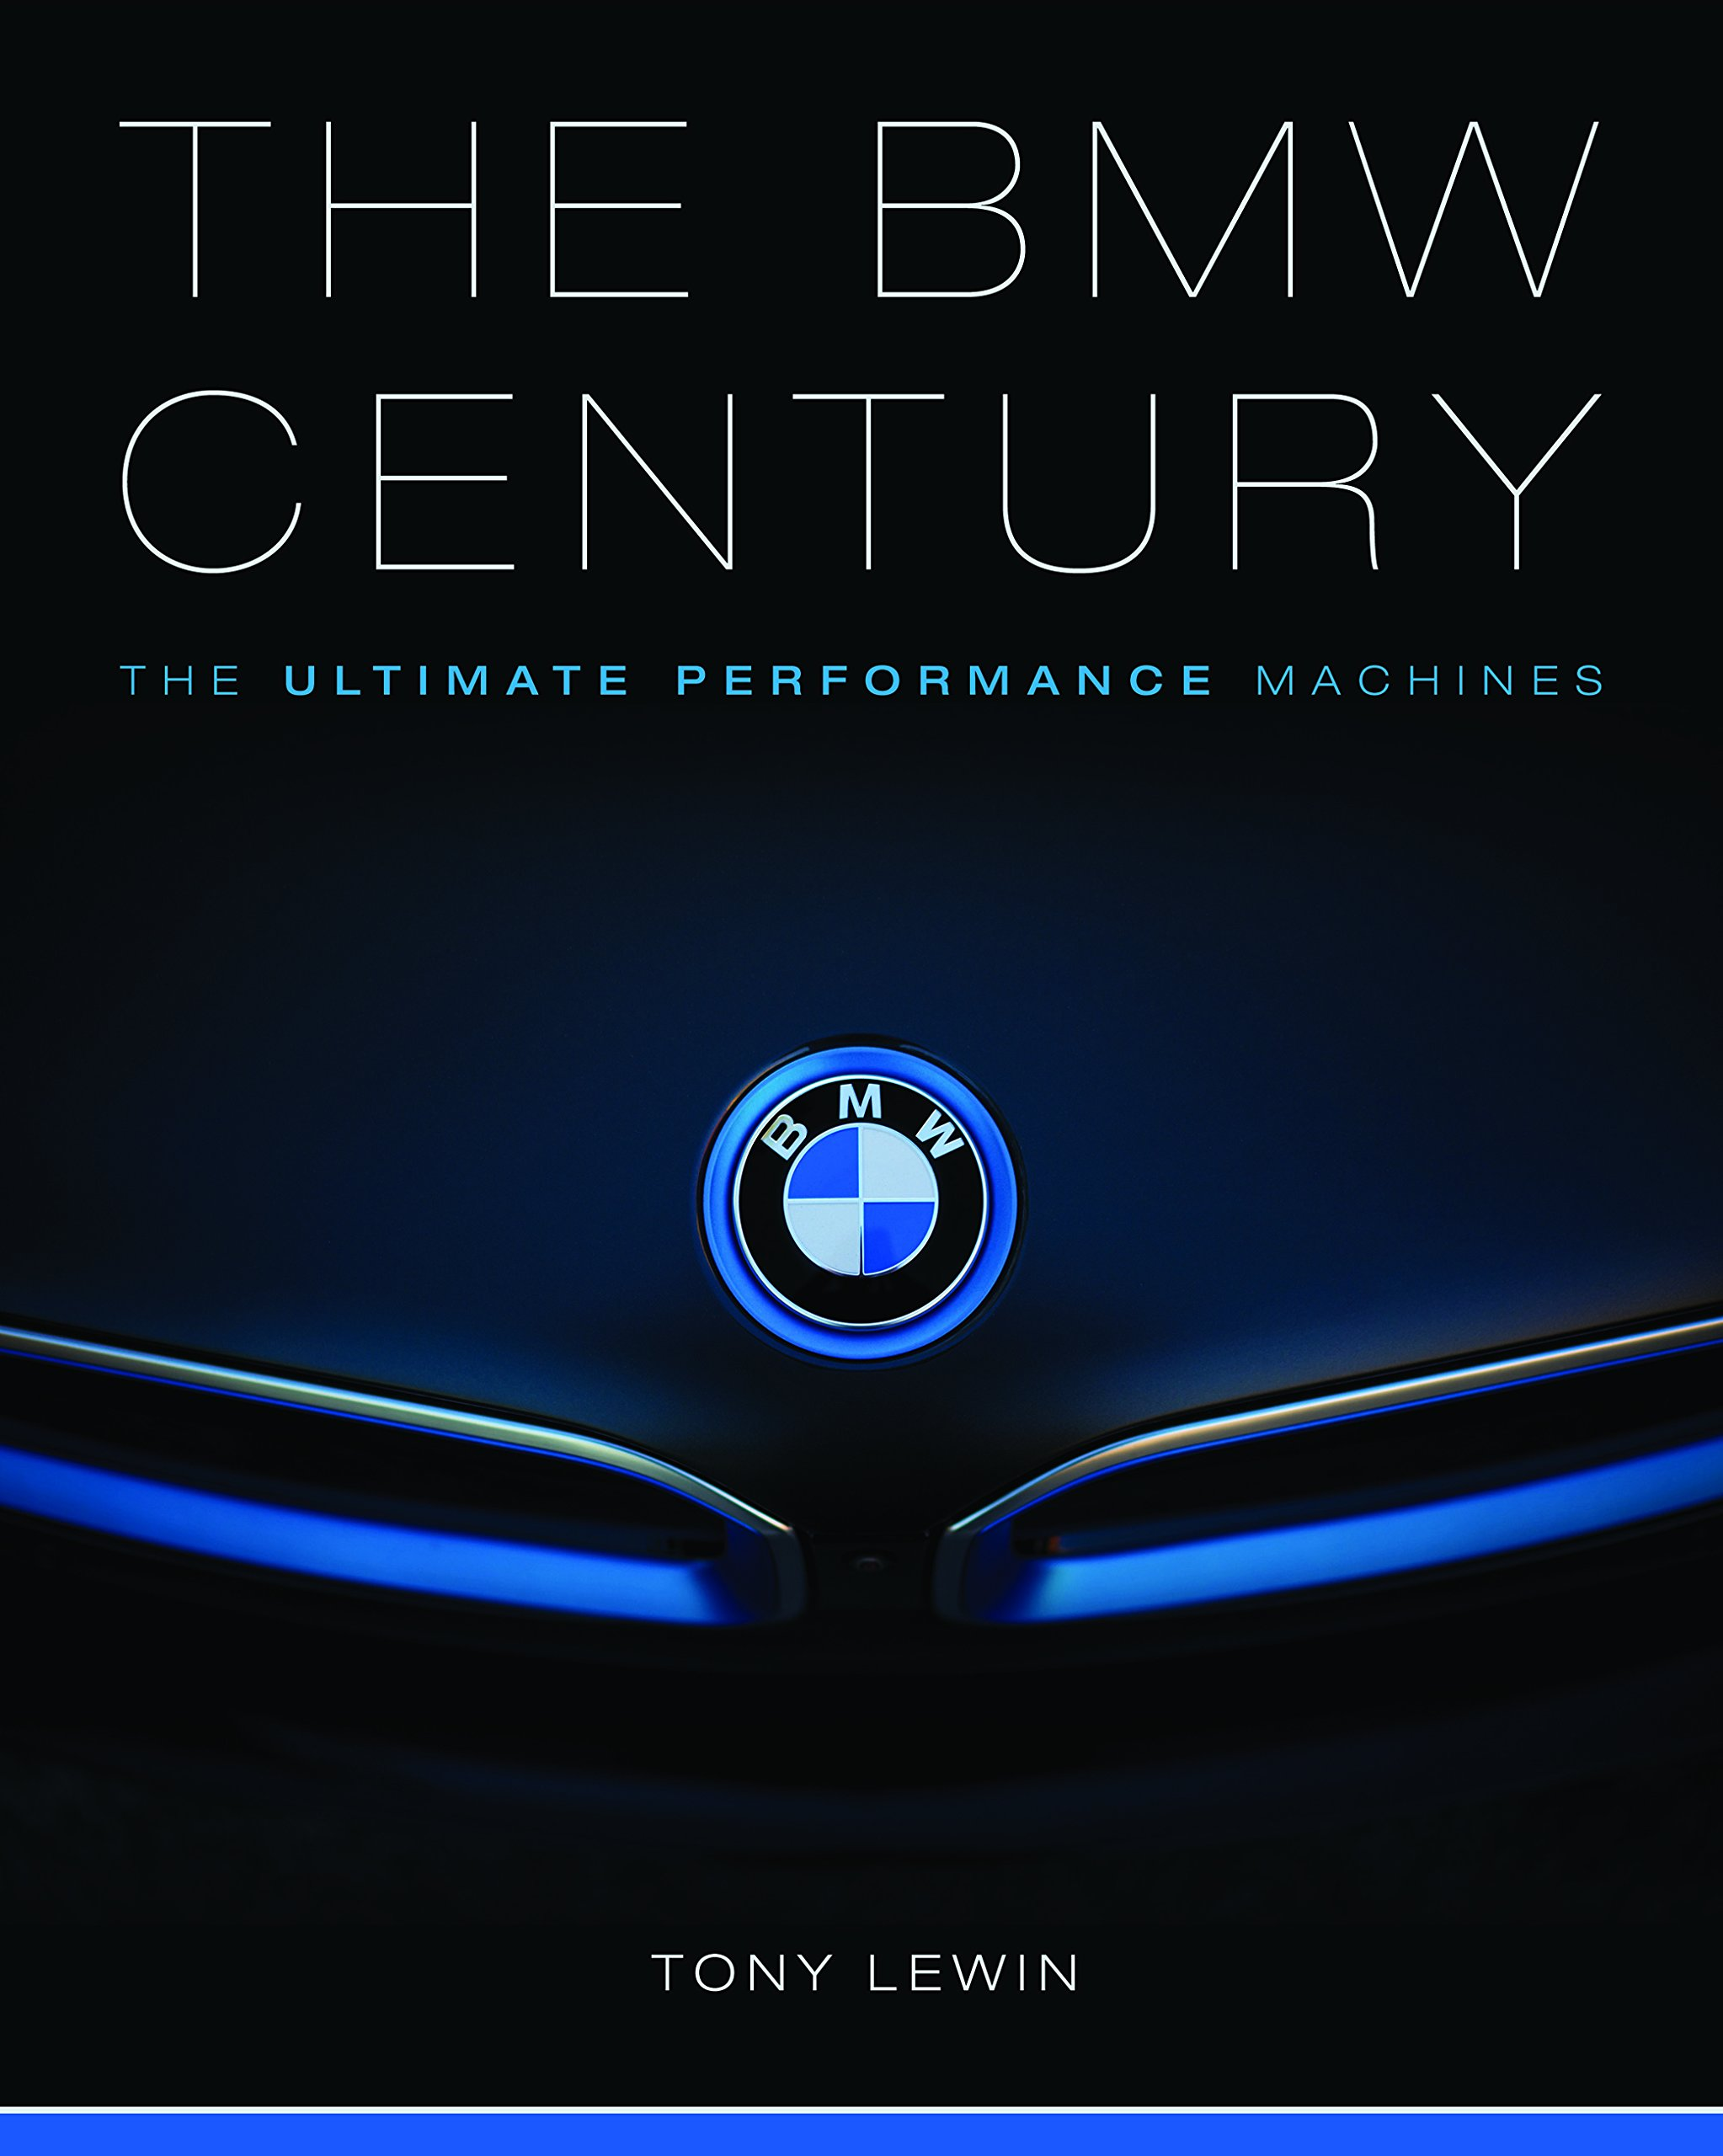 The BMW Century: The Ultimate Performance Machines: Tony Lewin, Tom Purves:  9780760350171: Amazon.com: Books